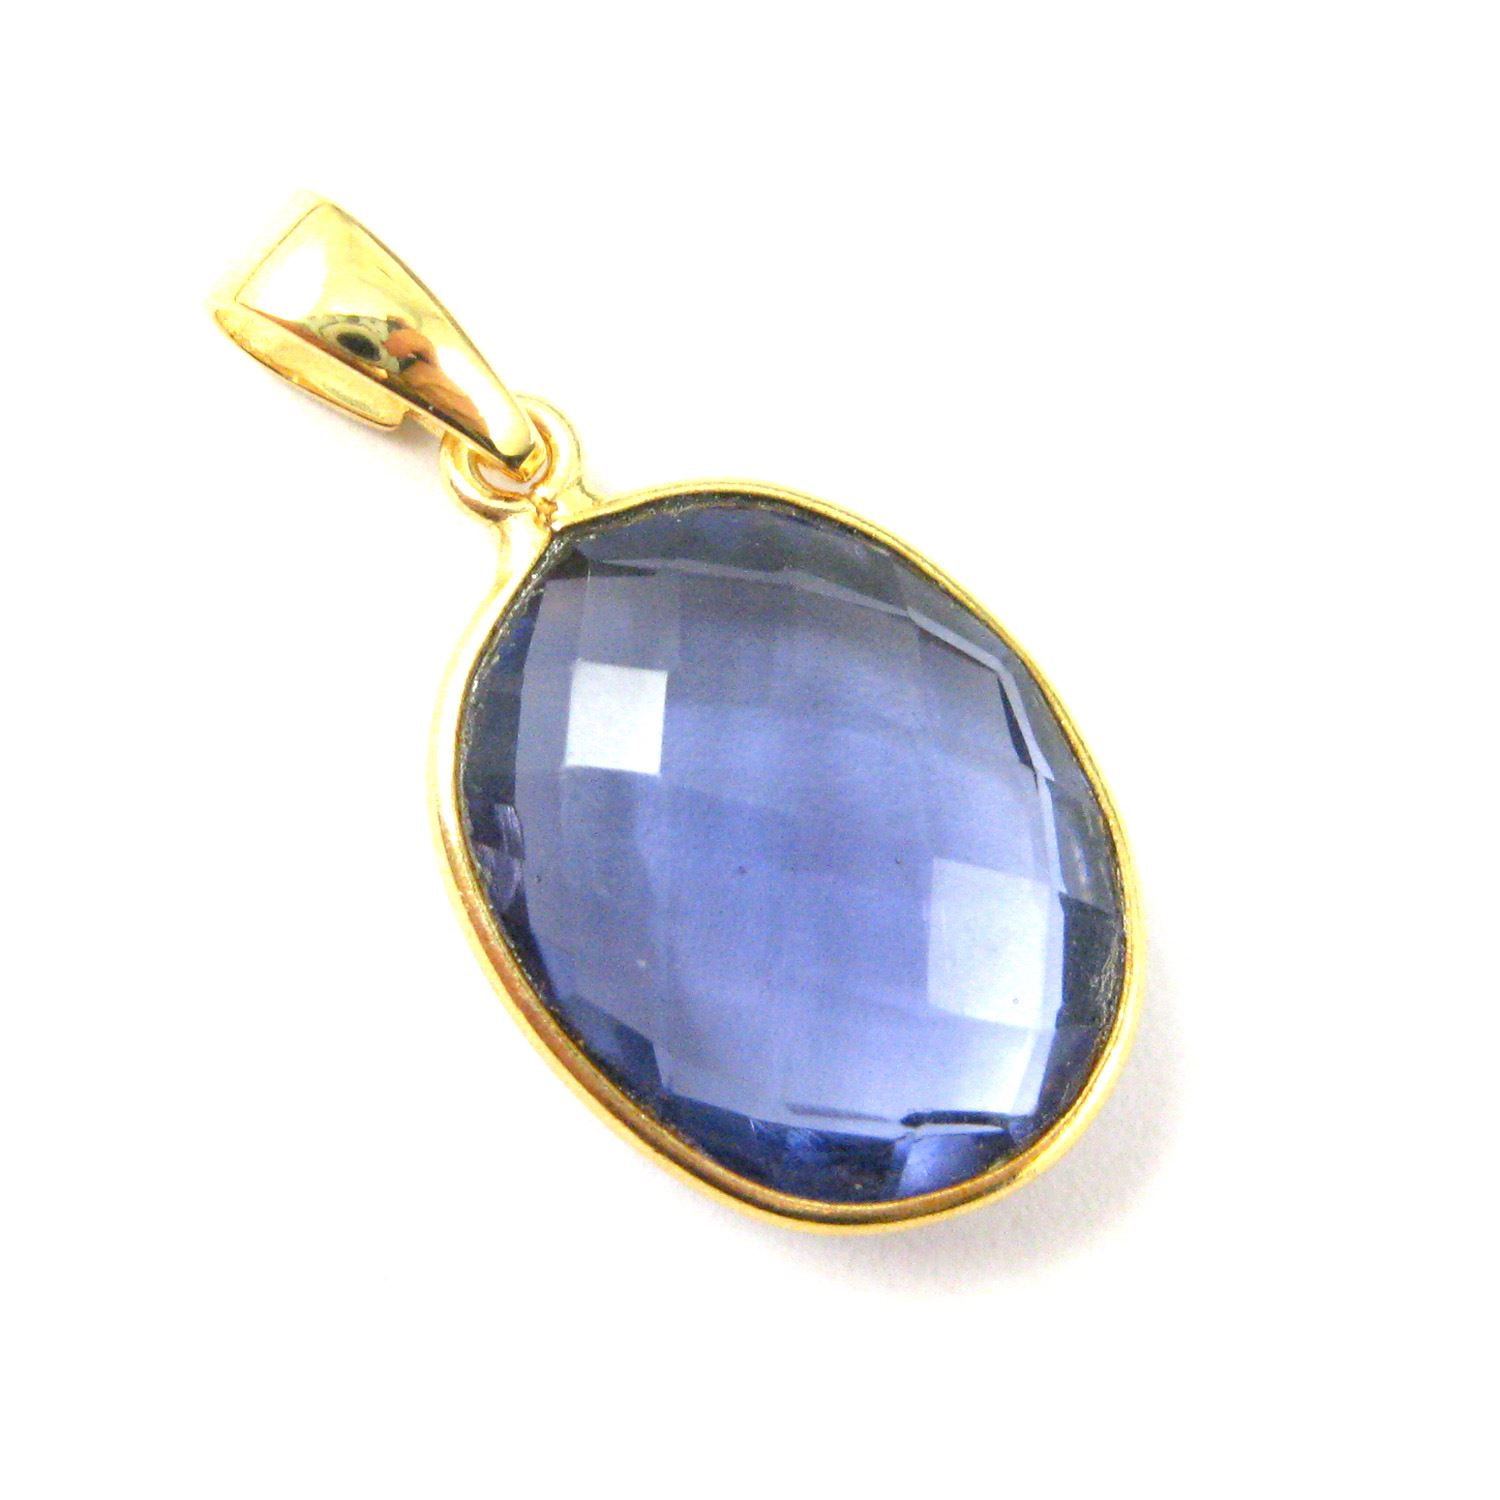 Bezel Gemstone Pendant with Bail - Gold plated Sterling Silver Oval Gem Pendant - Ready for Necklace - 28mm - Iolite Quartz